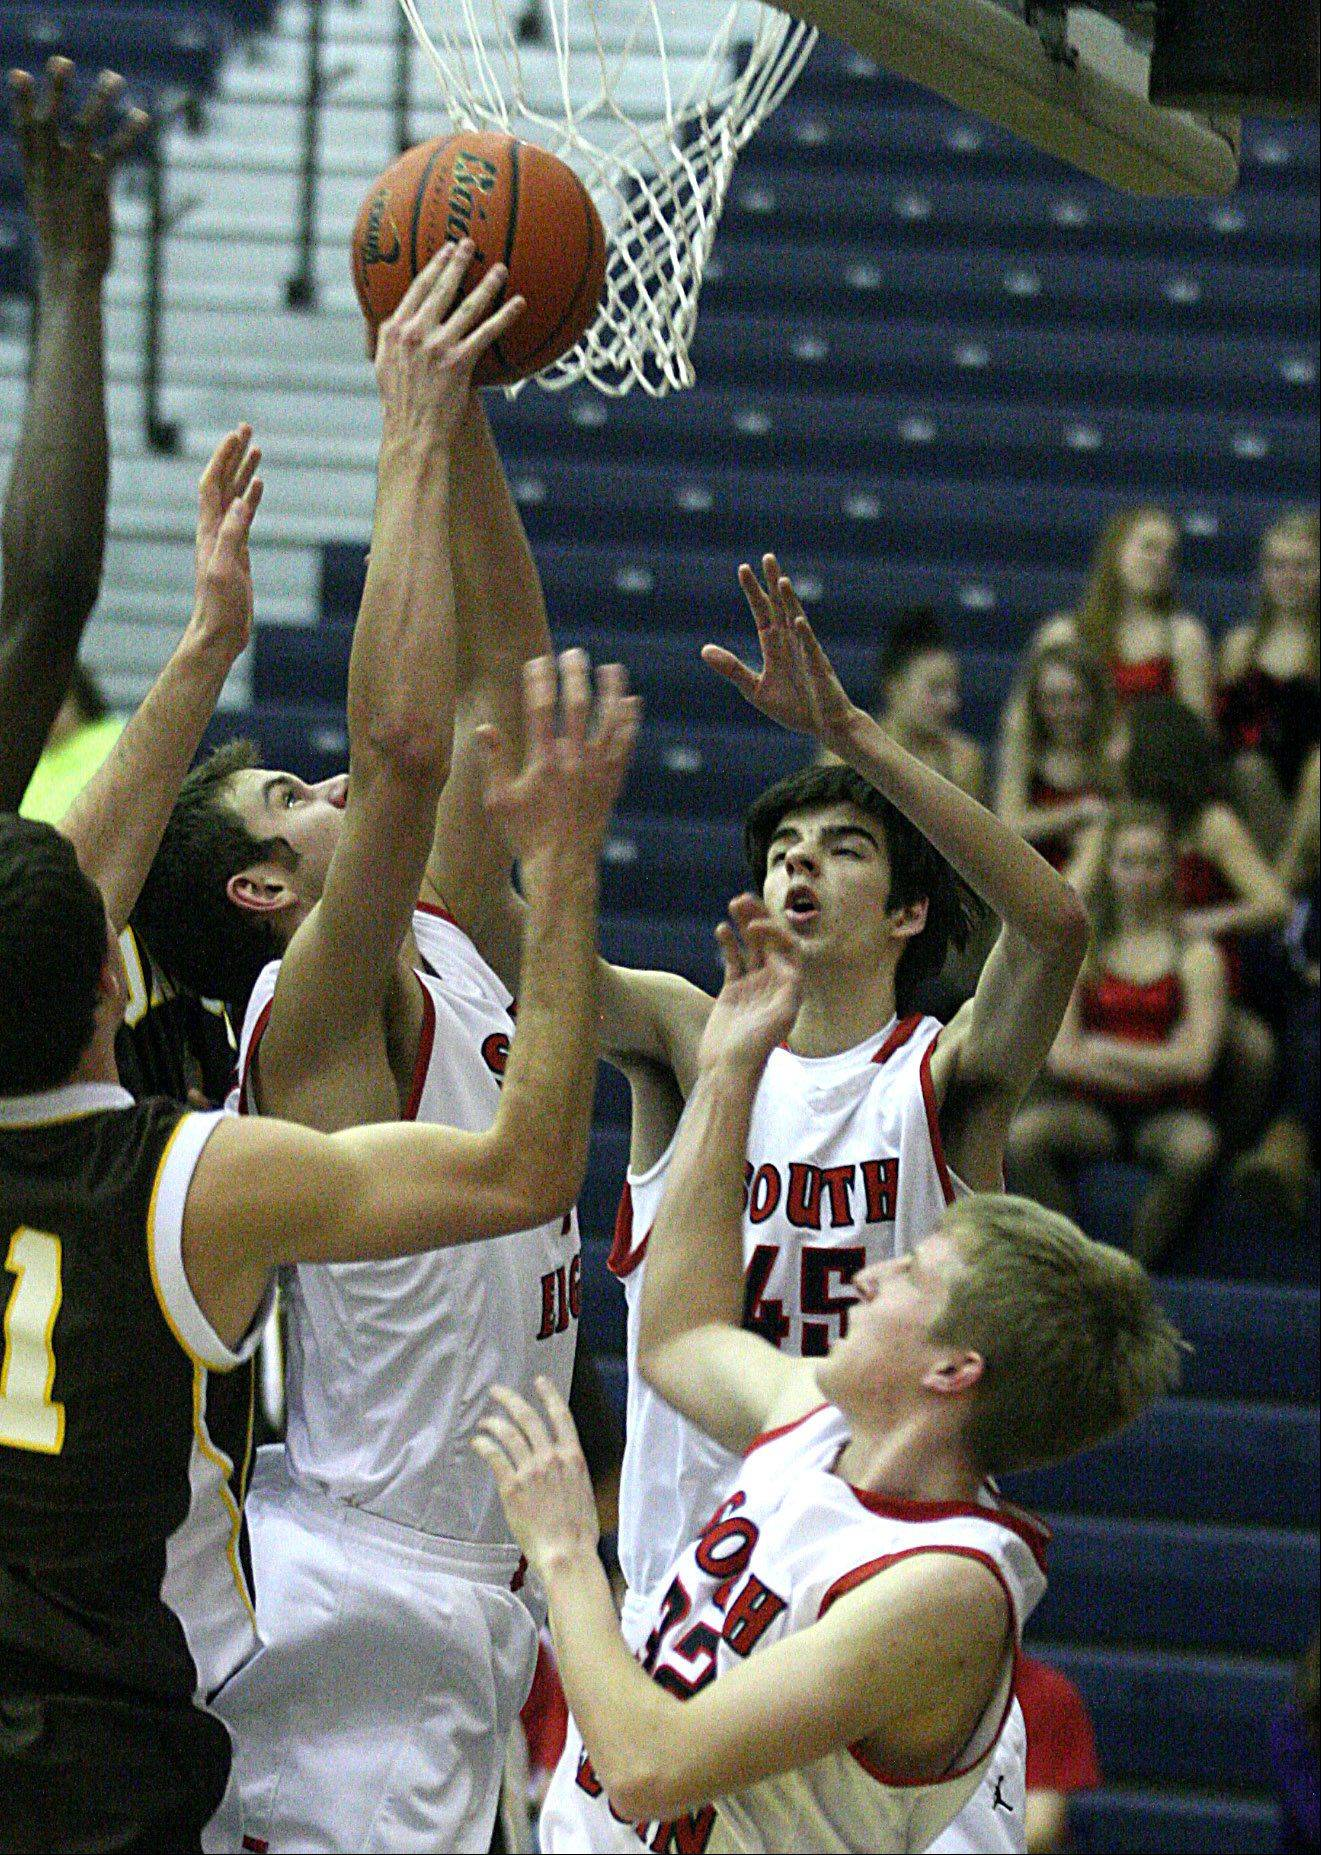 Images from the Jacobs vs. South Elgin boys basketball game Tuesday night, December 18, 2012 in South Elgin.